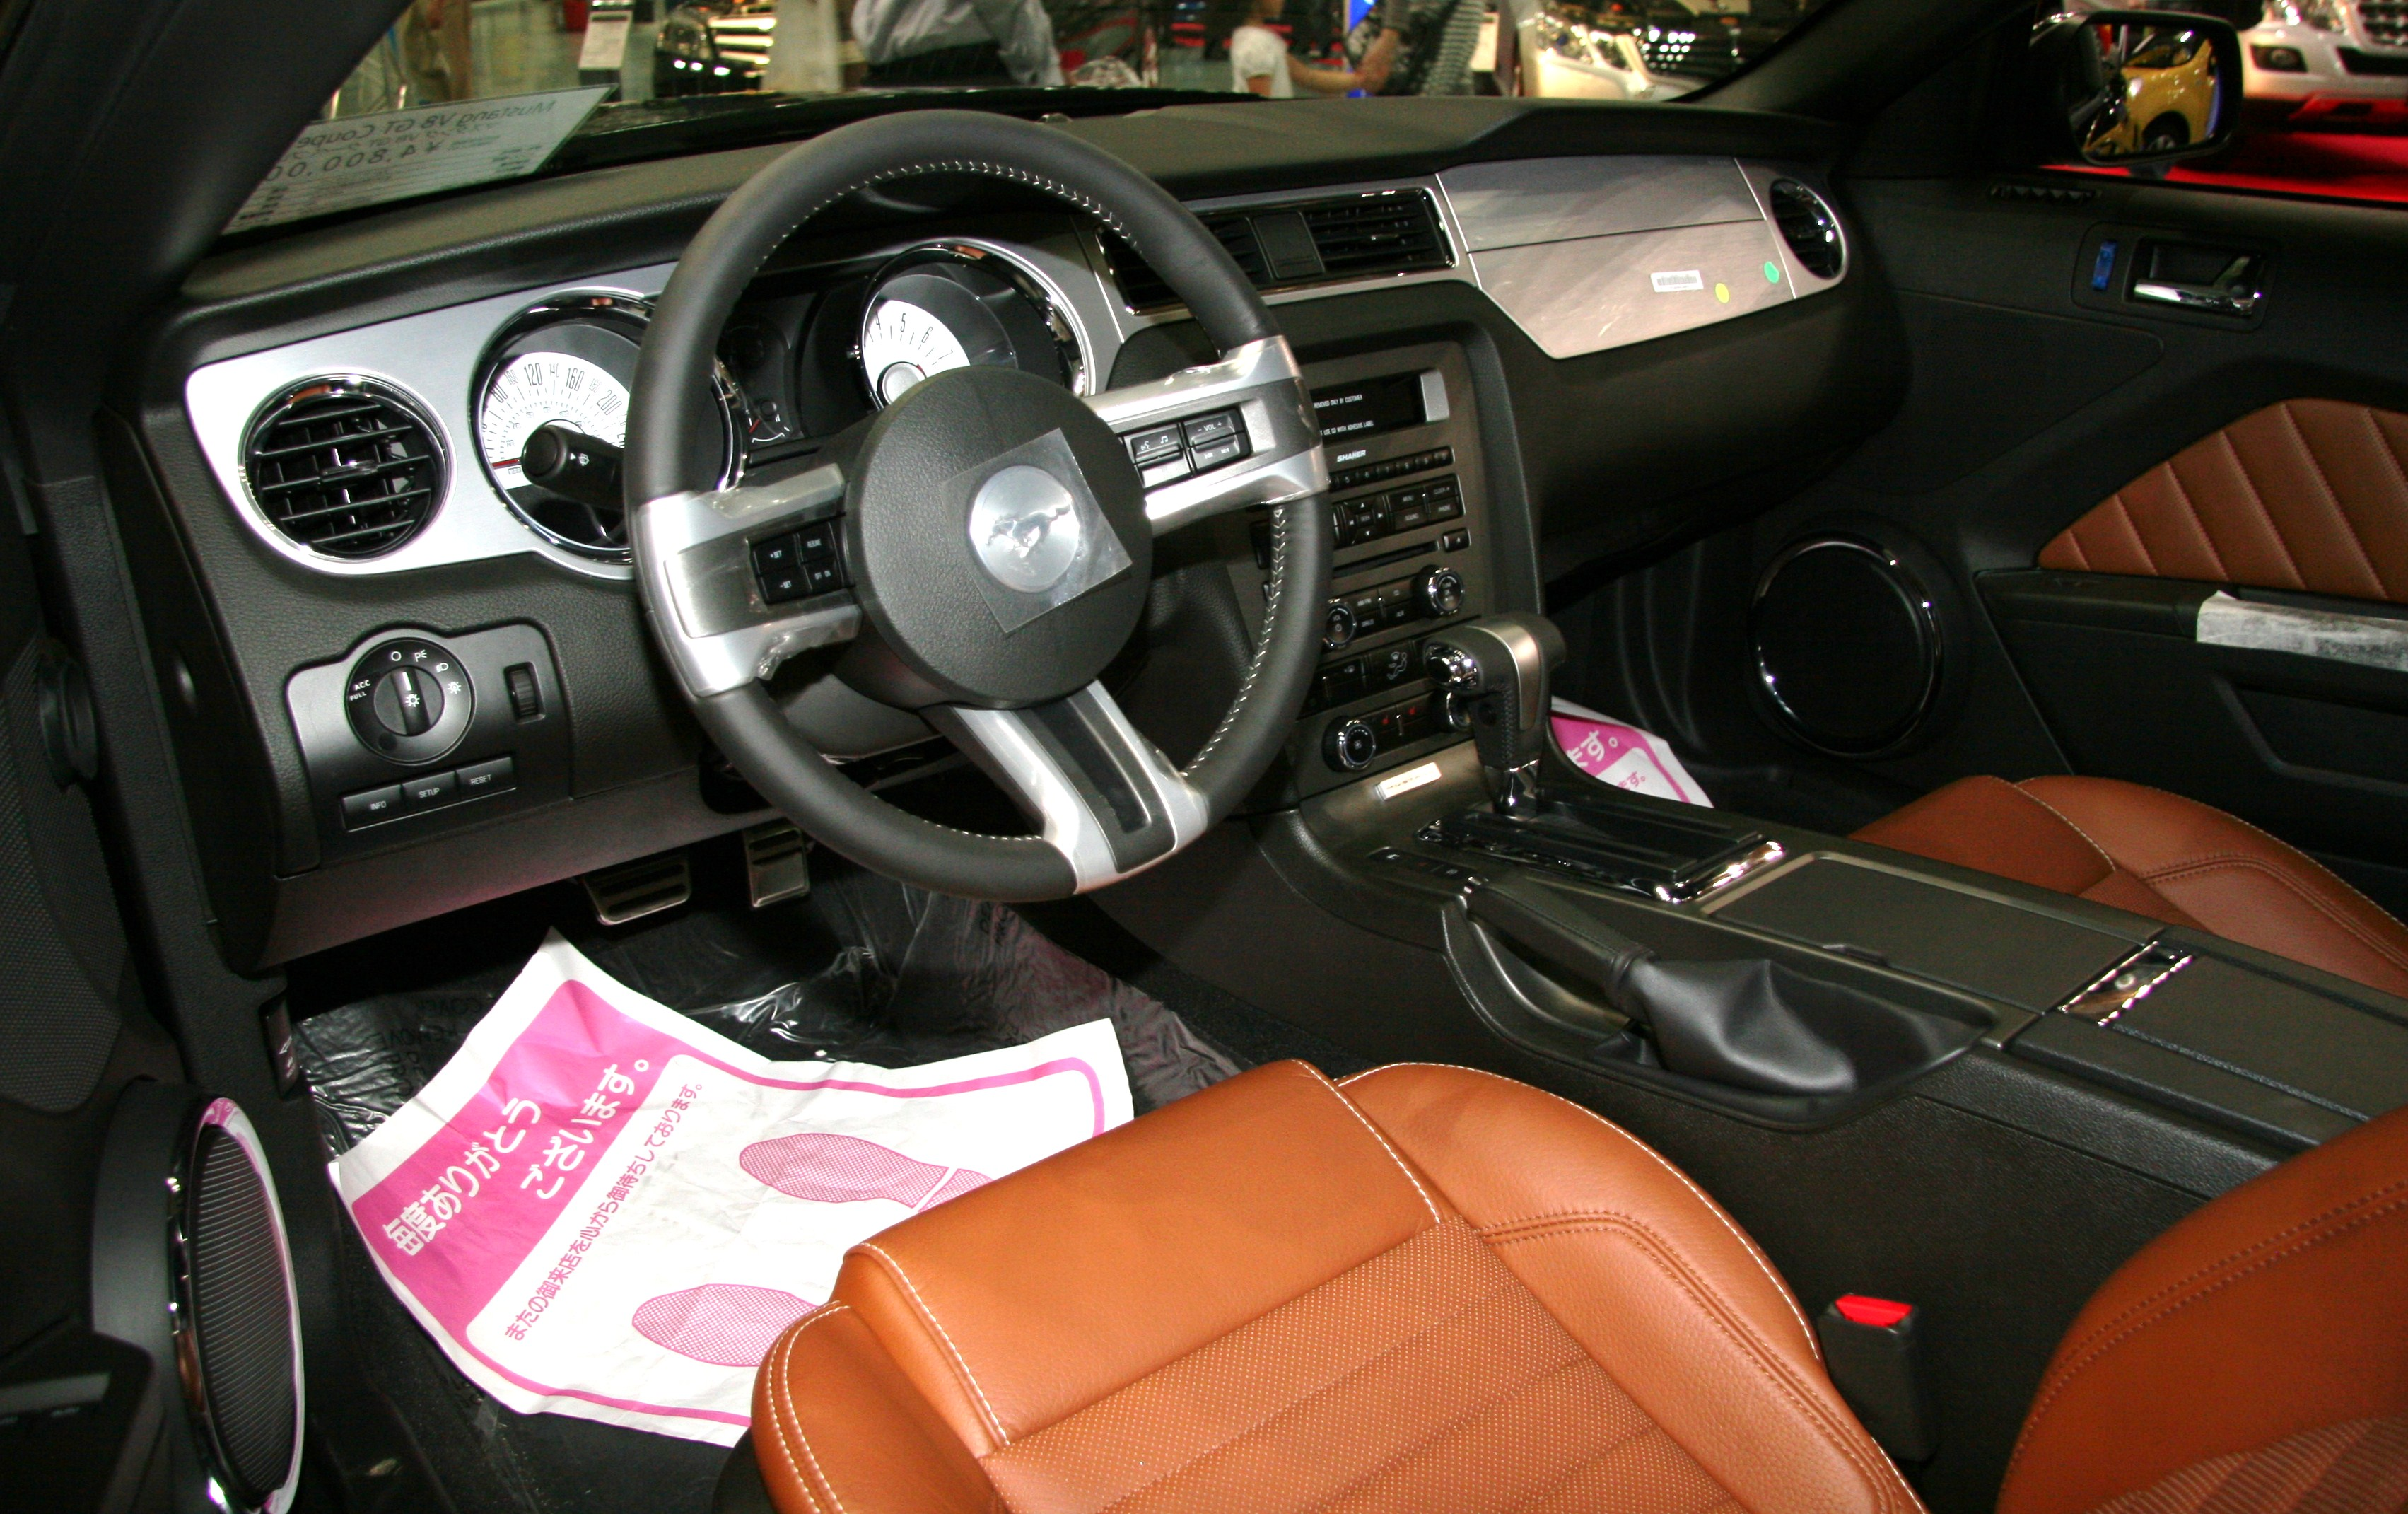 File:Ford Mustang V8 GT Coupe Premium Interior